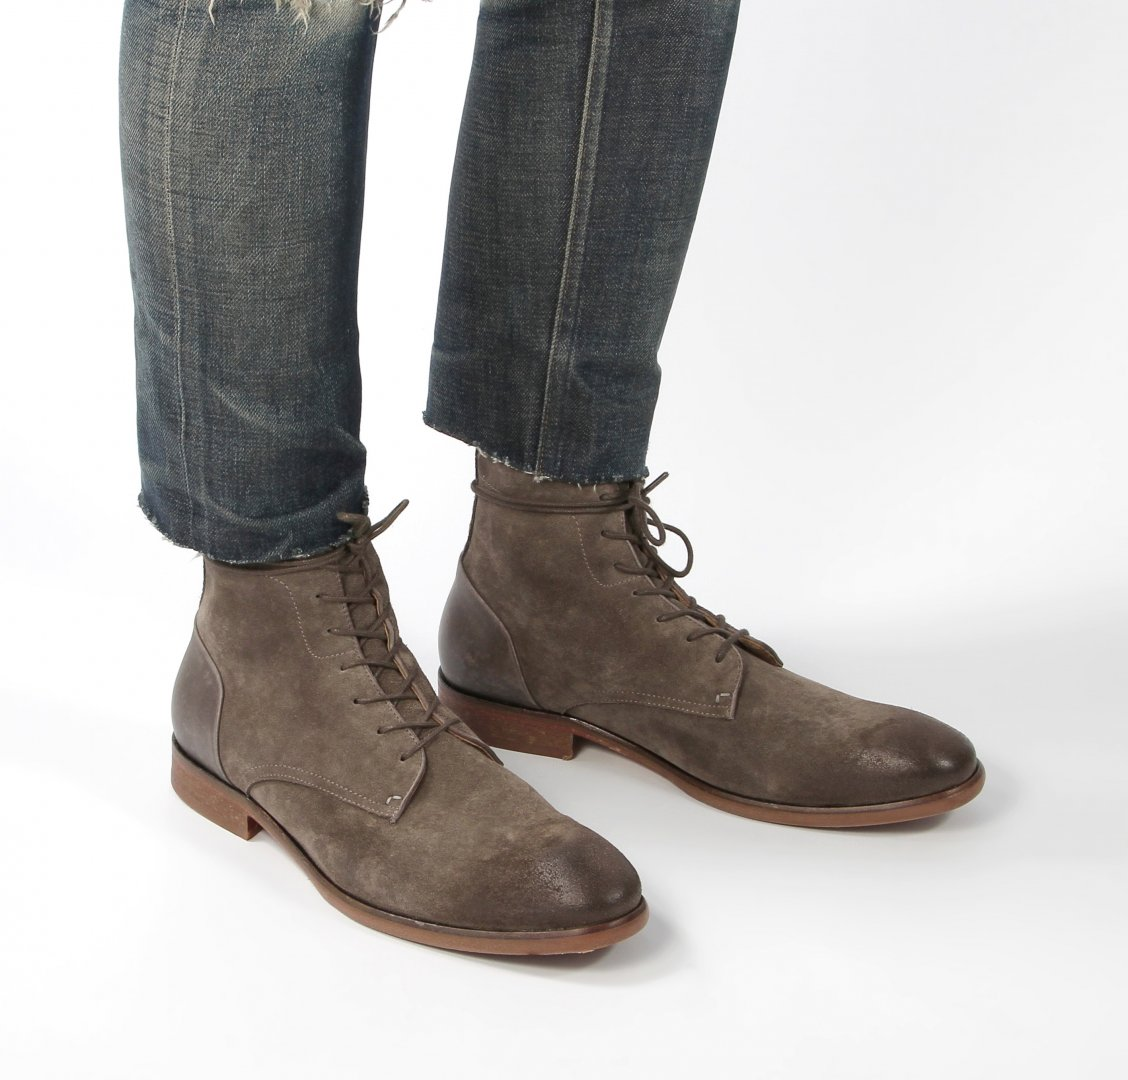 Yoakley Suede Stone Boot by Hudson